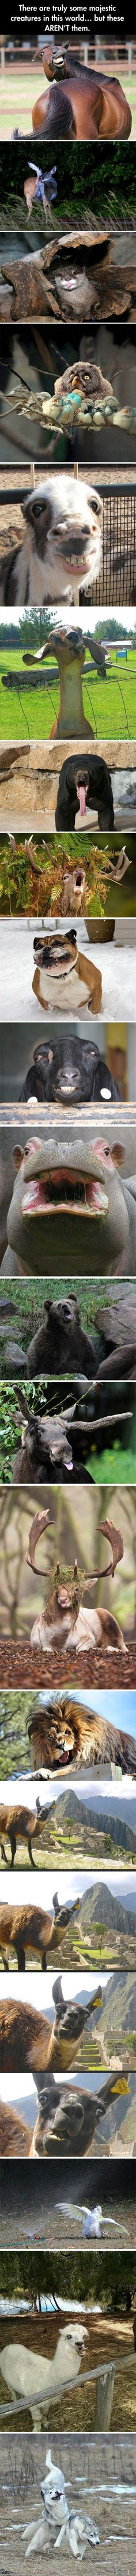 Derpy animals - Visit http://dailyhaha.com/pictures.htm for daily funny pictures.